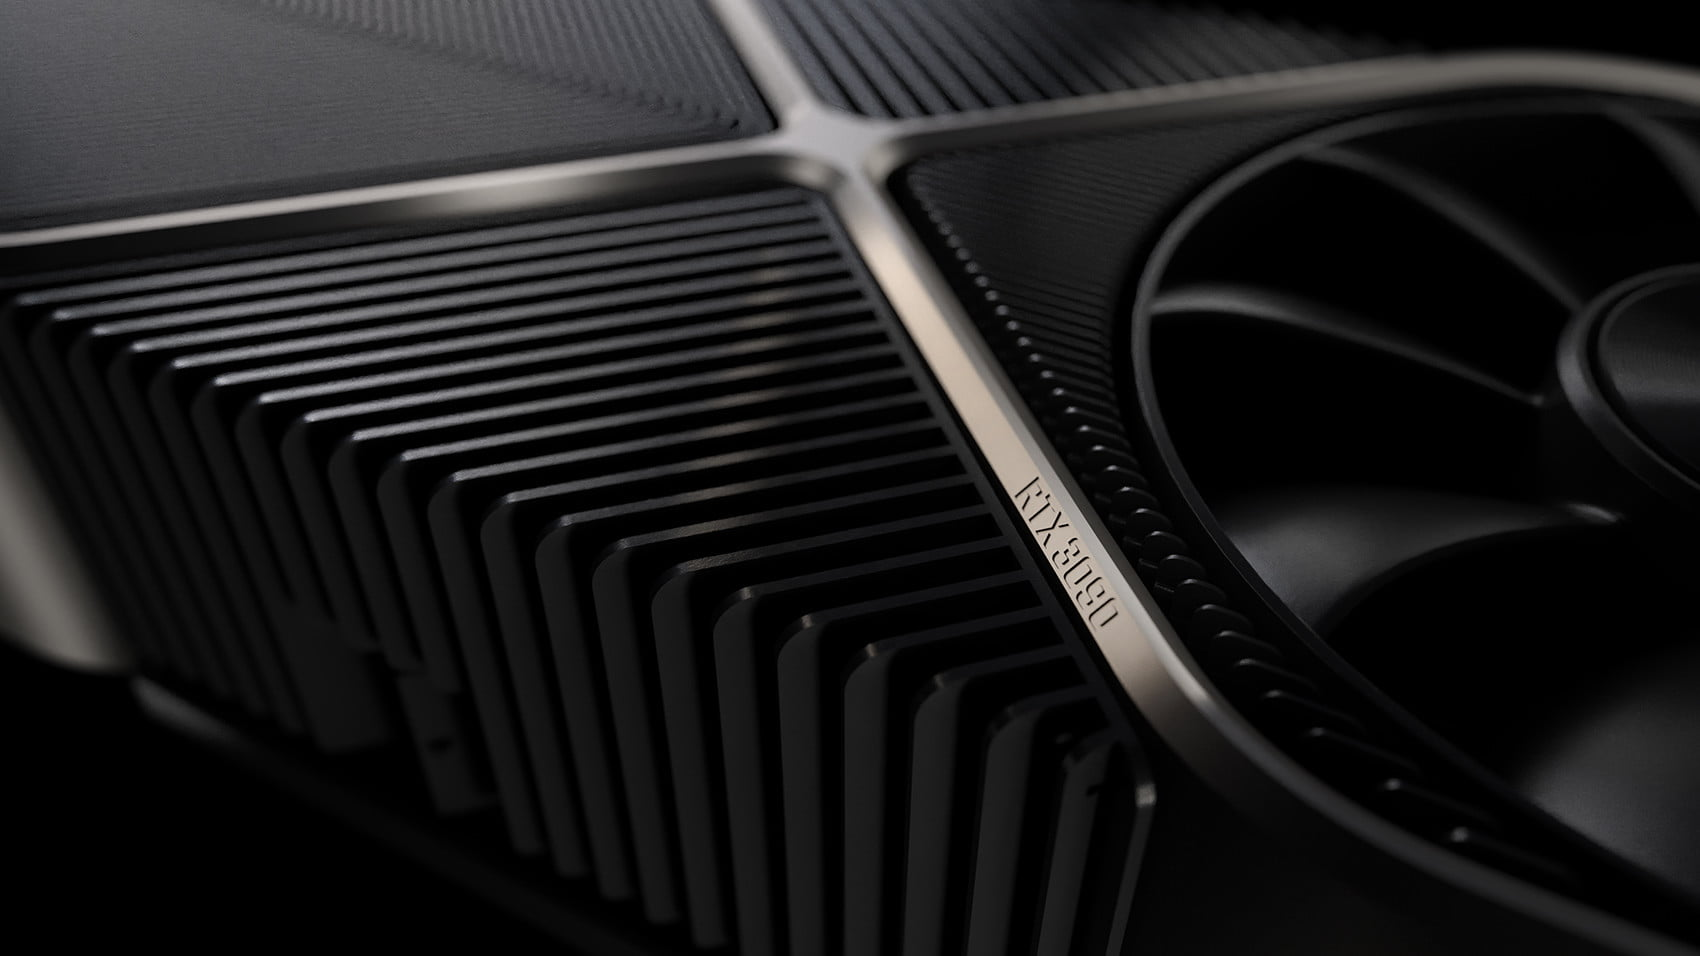 Nvidia RTX 40-series GPUs may consume a crazy amount of power